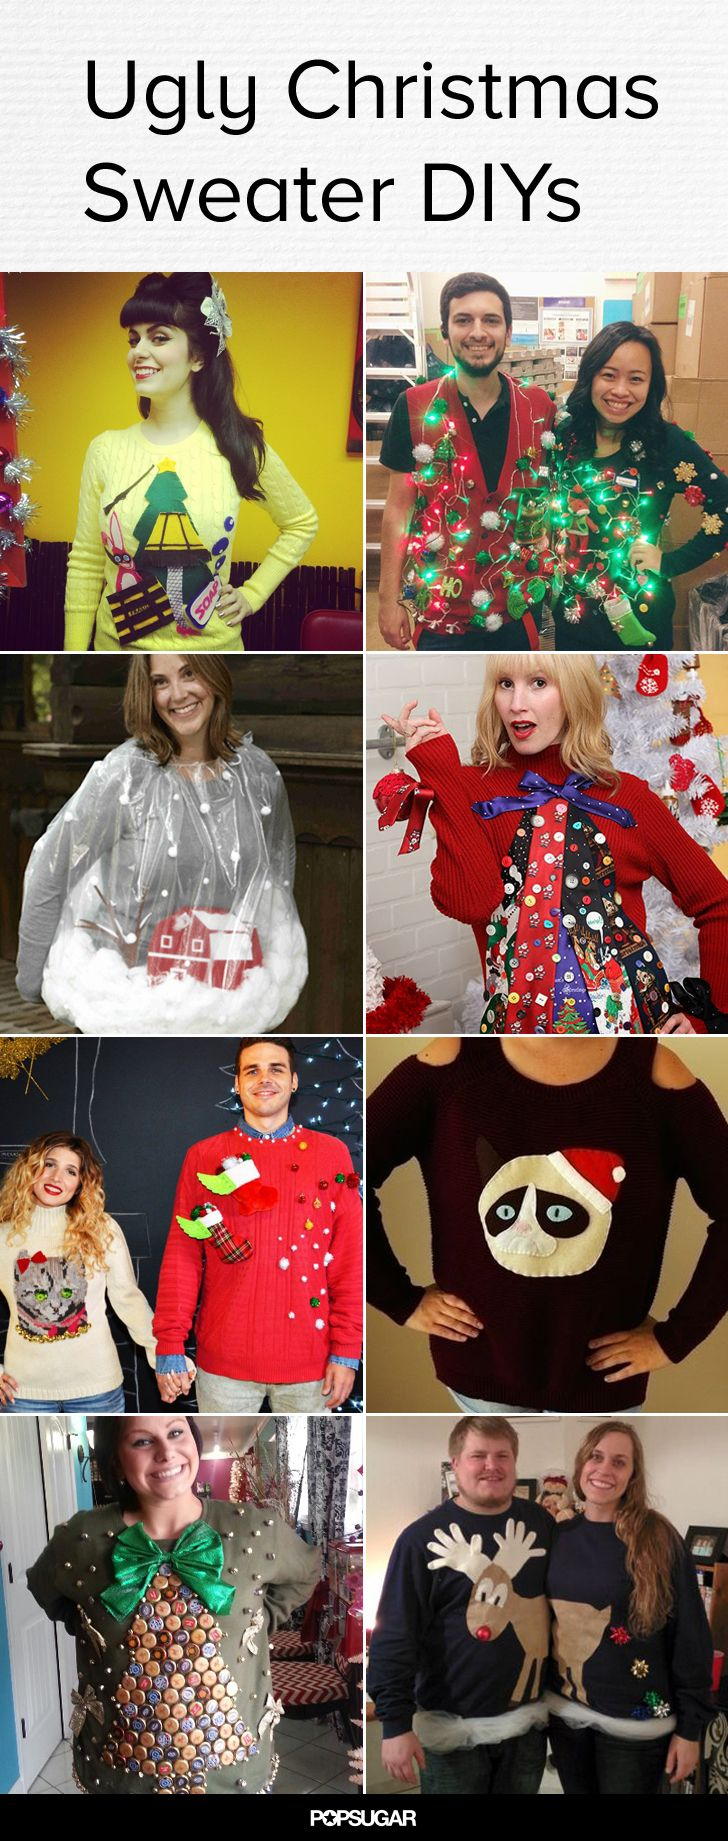 You'll have the ugliest DIY Christmas sweater at the party... yay!